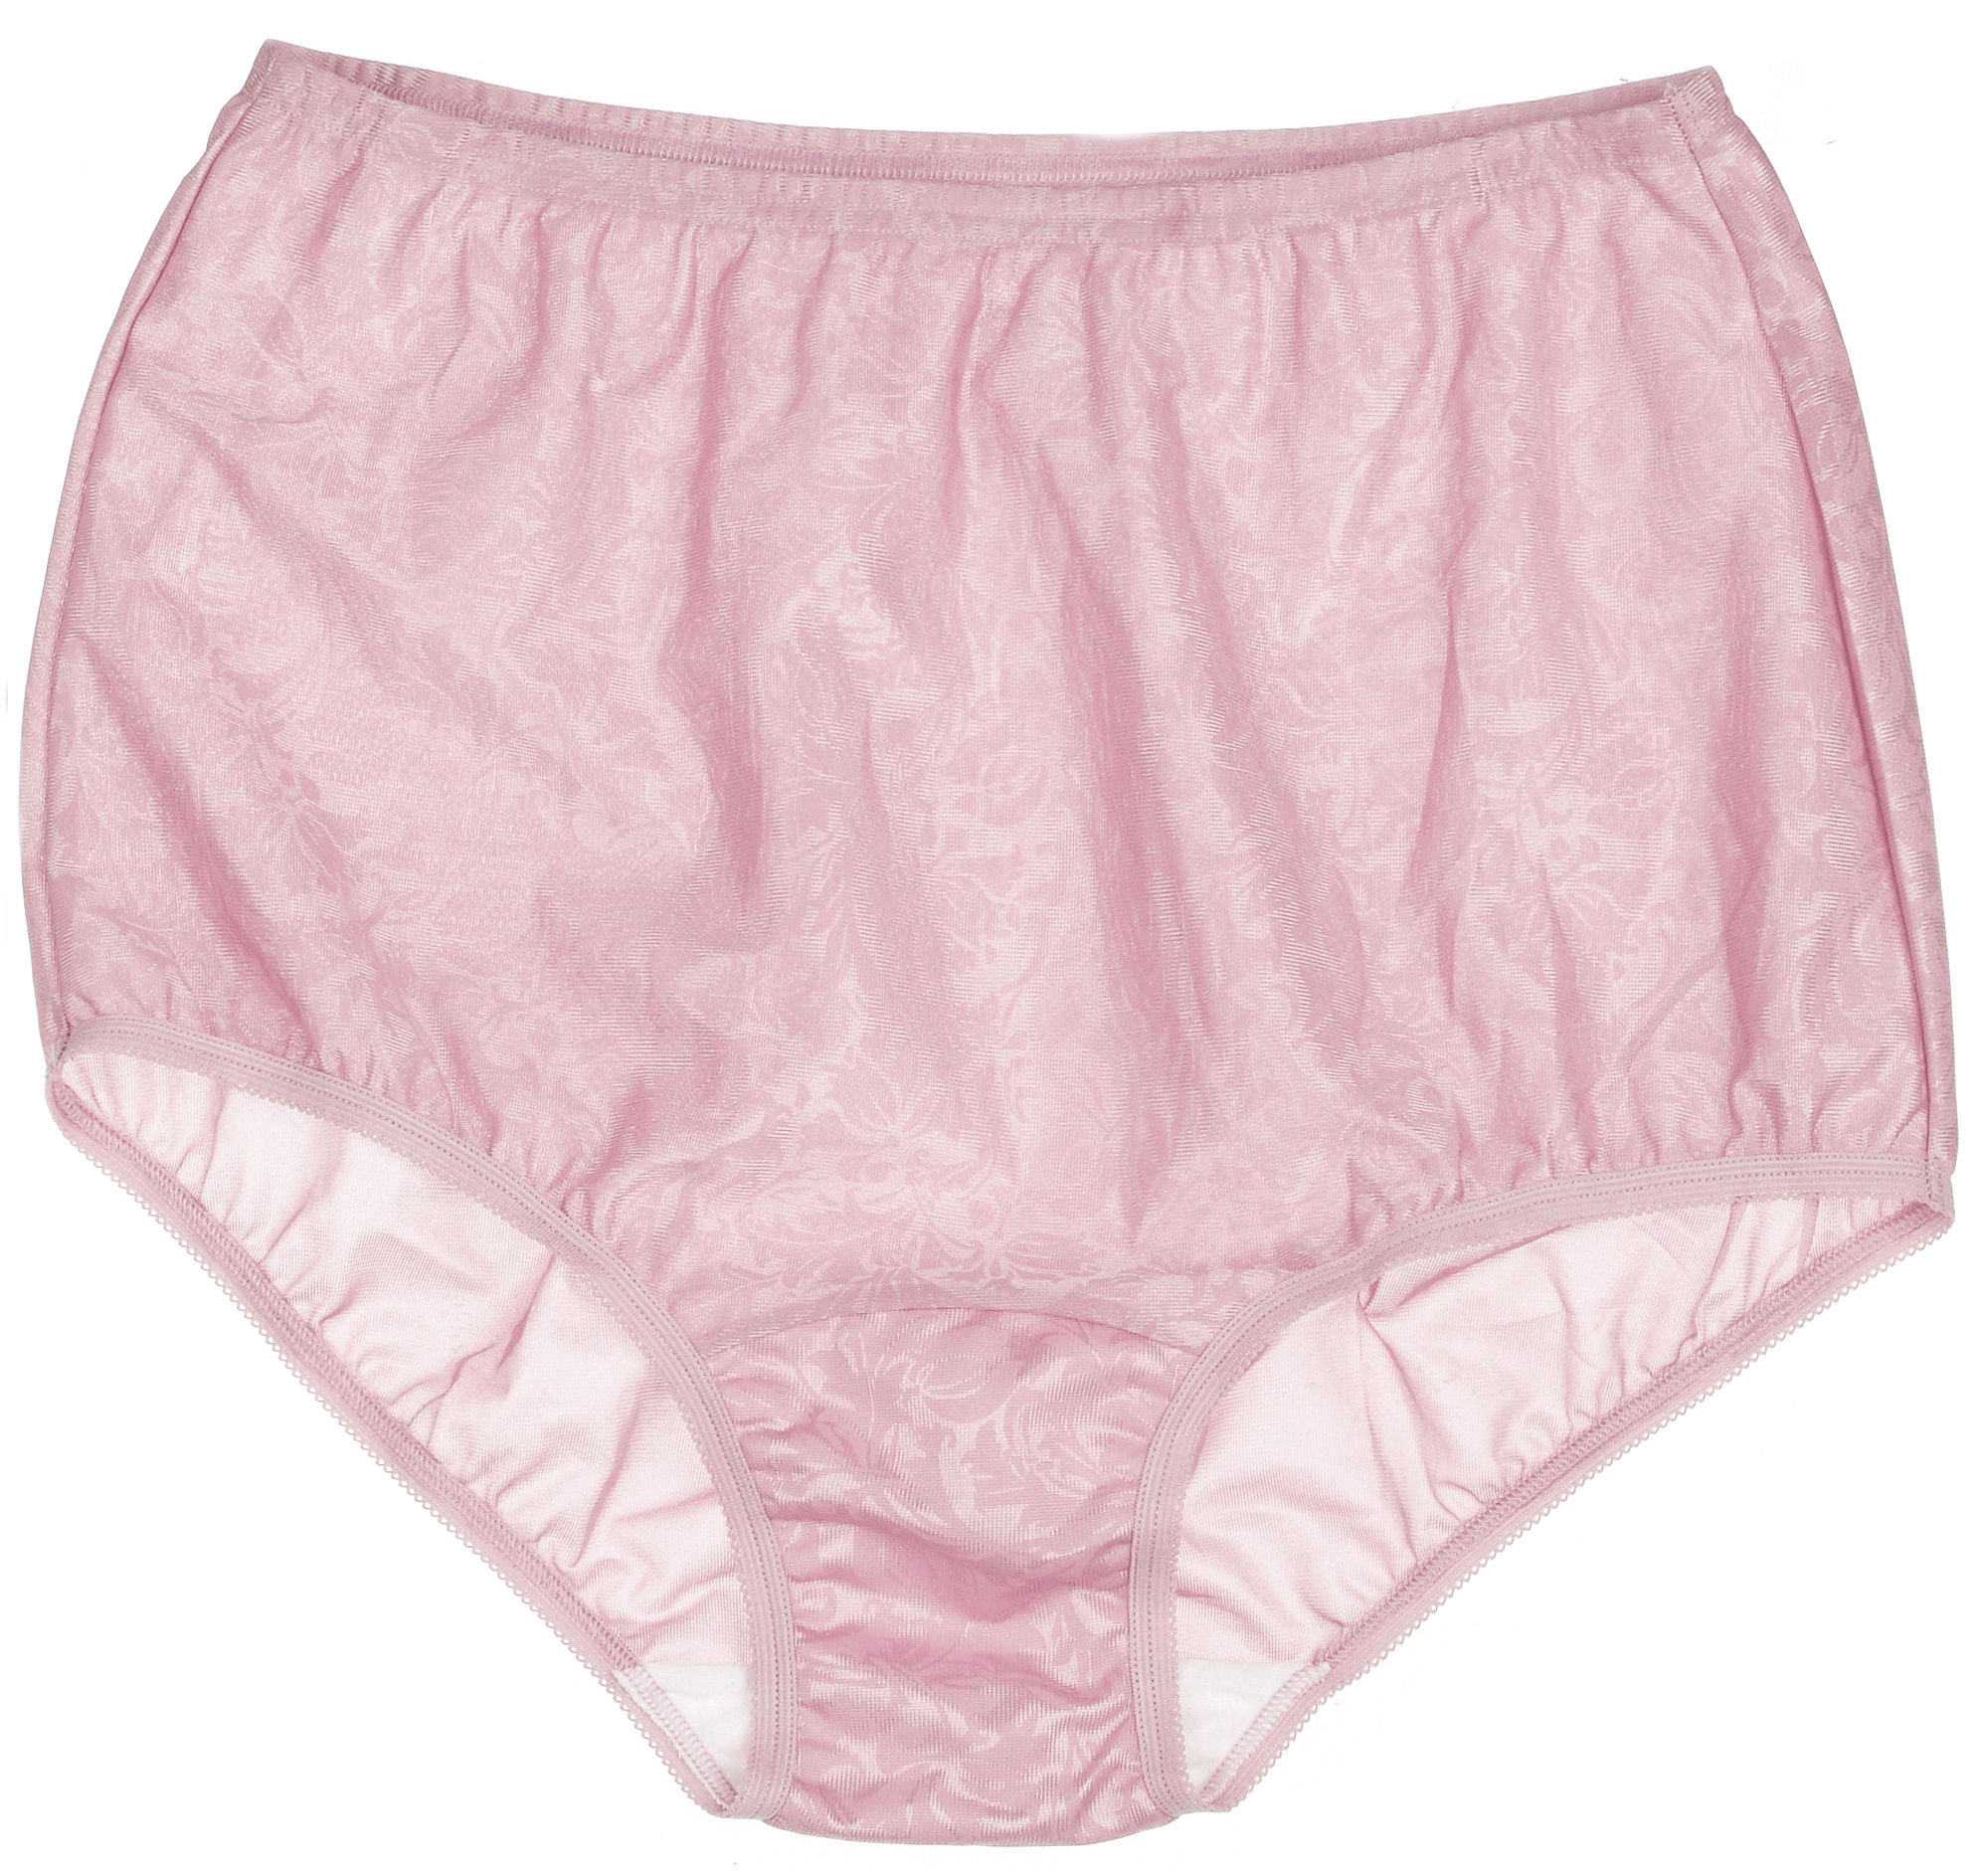 2 Vanity Fair Brief Panty Nylon Perfectly Yours 8 XL